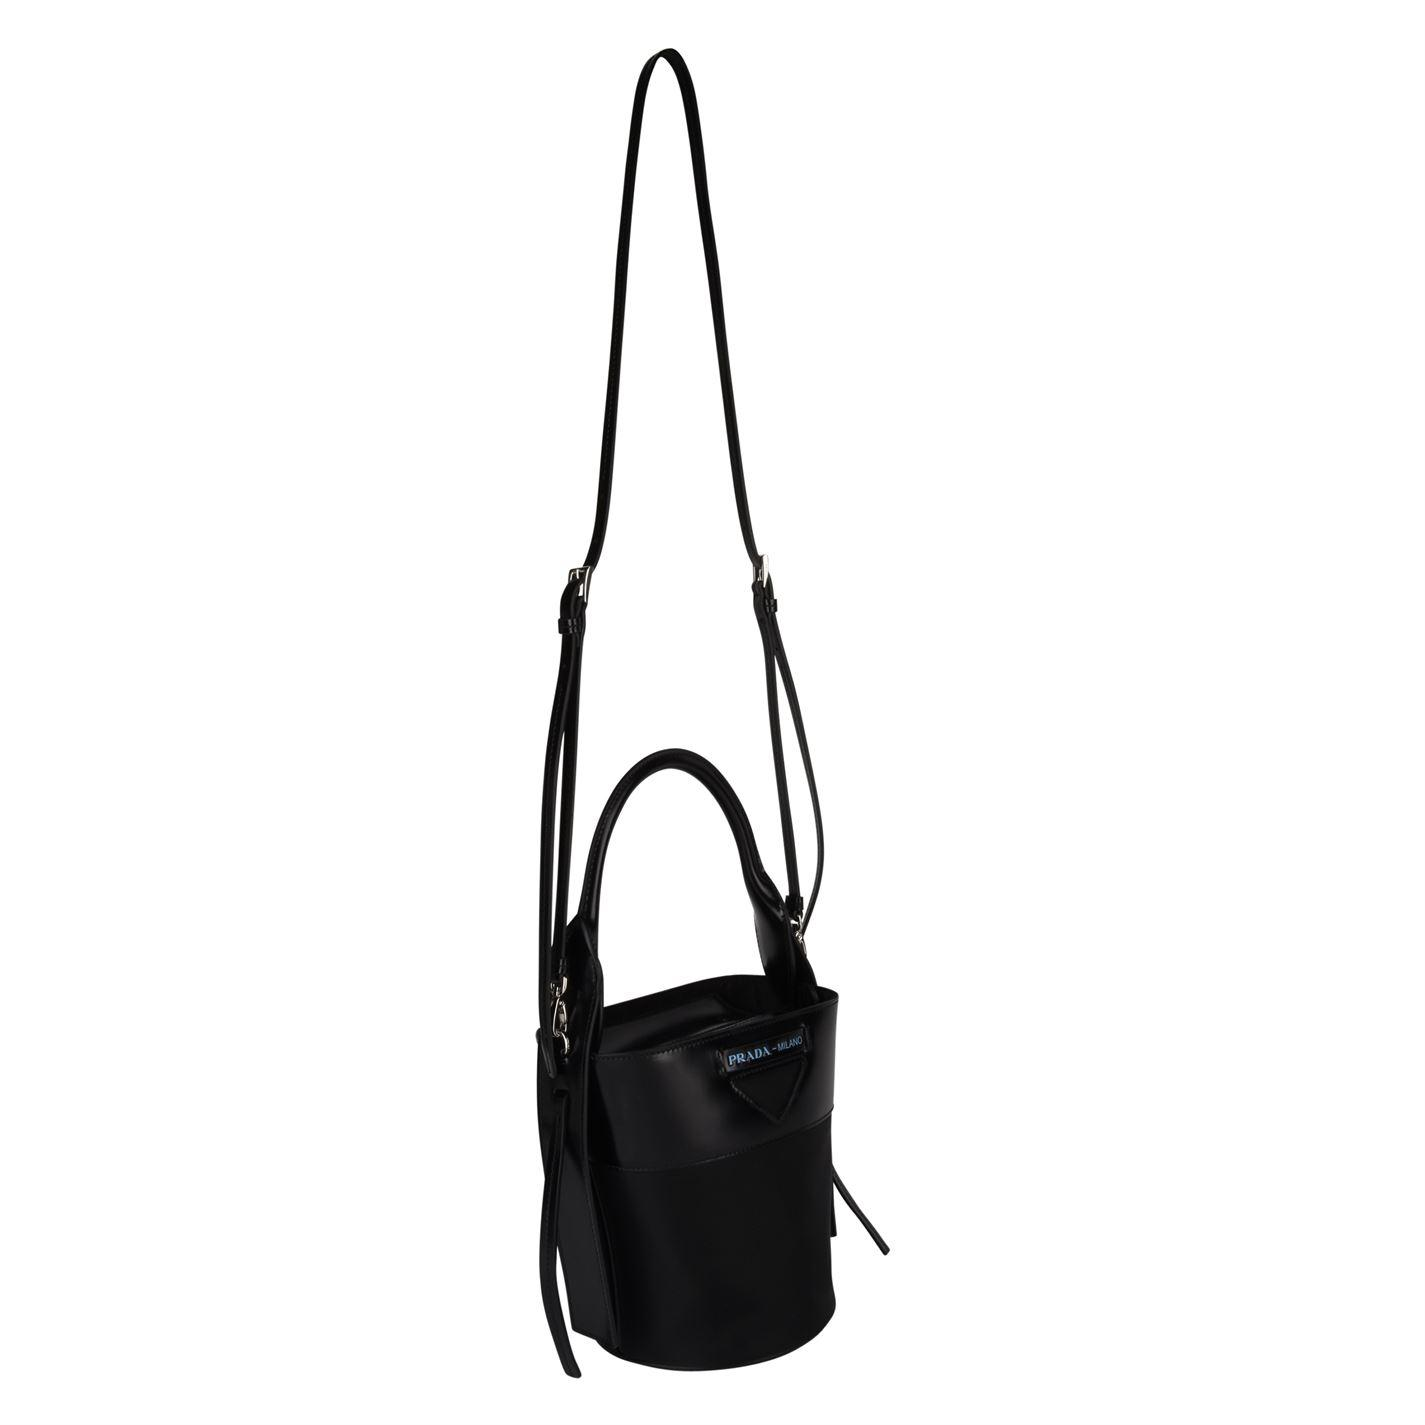 2c9ff22d59a8 Prada - Black Ouverture Nylon Bucket Bag - Lyst. View fullscreen